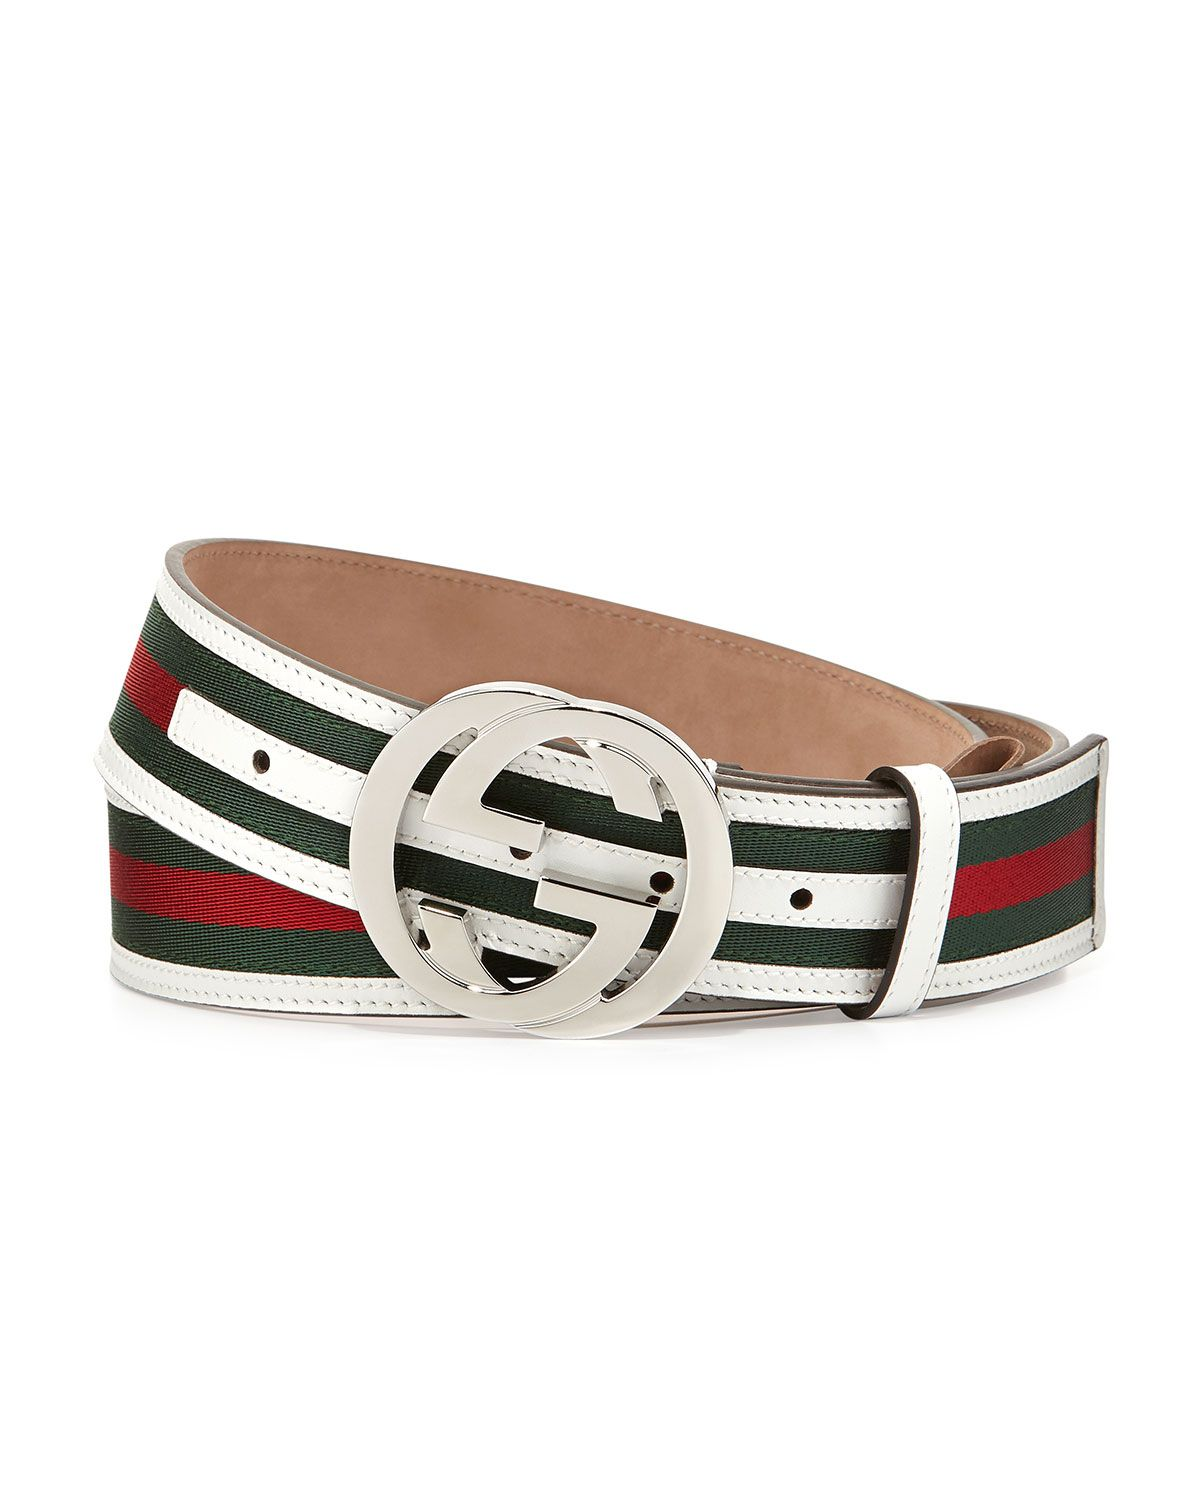 f4c627ccf Green/Red/Green Web GG Belt, White, Size: 120/48 - Gucci | *Clothing ...